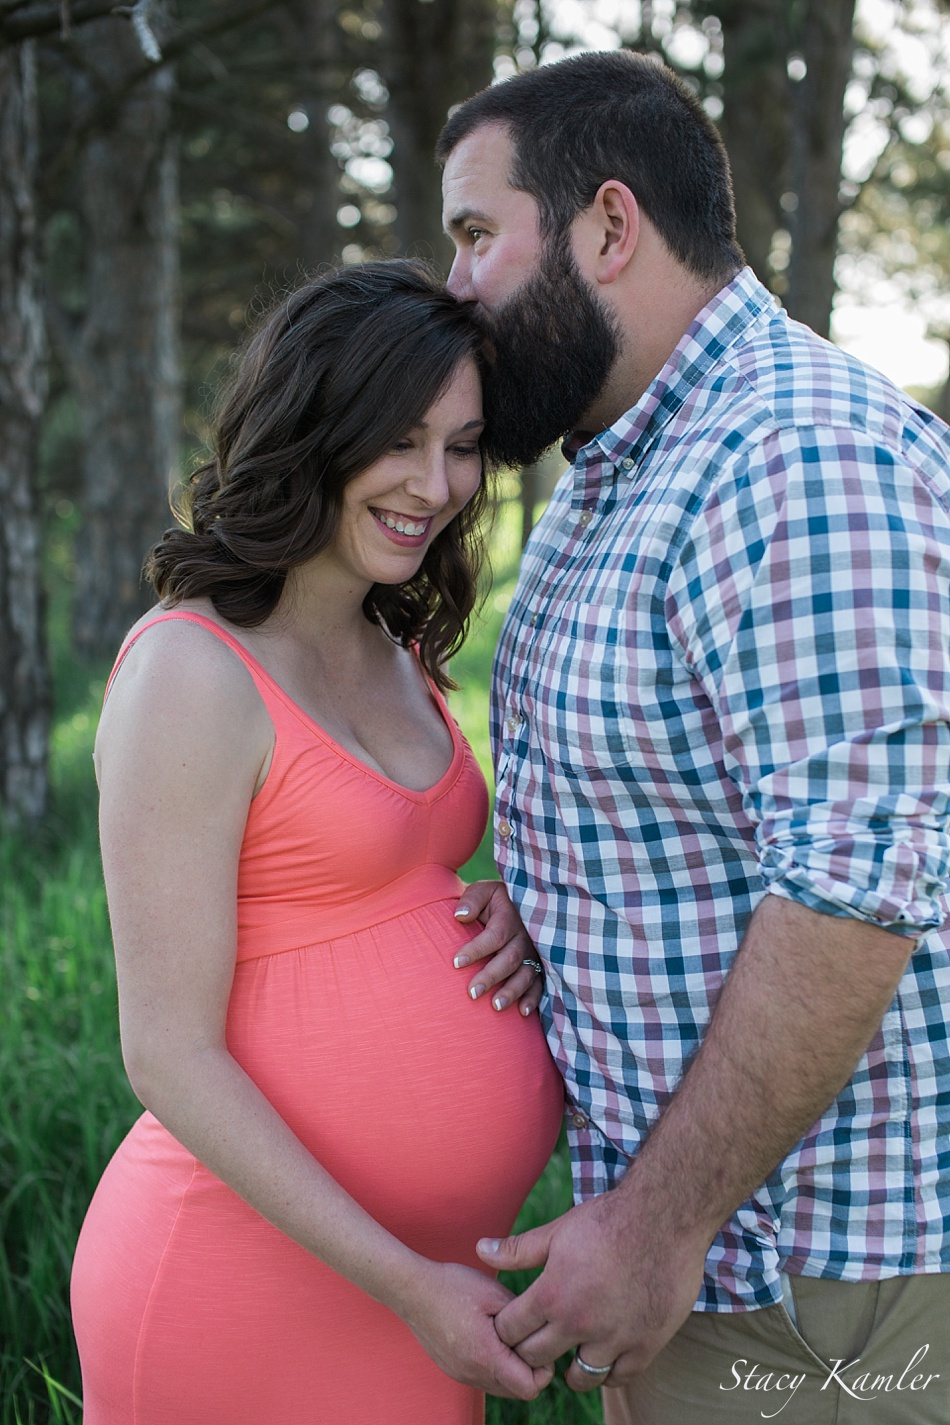 Maternity Photos in Pink Sundress in Park